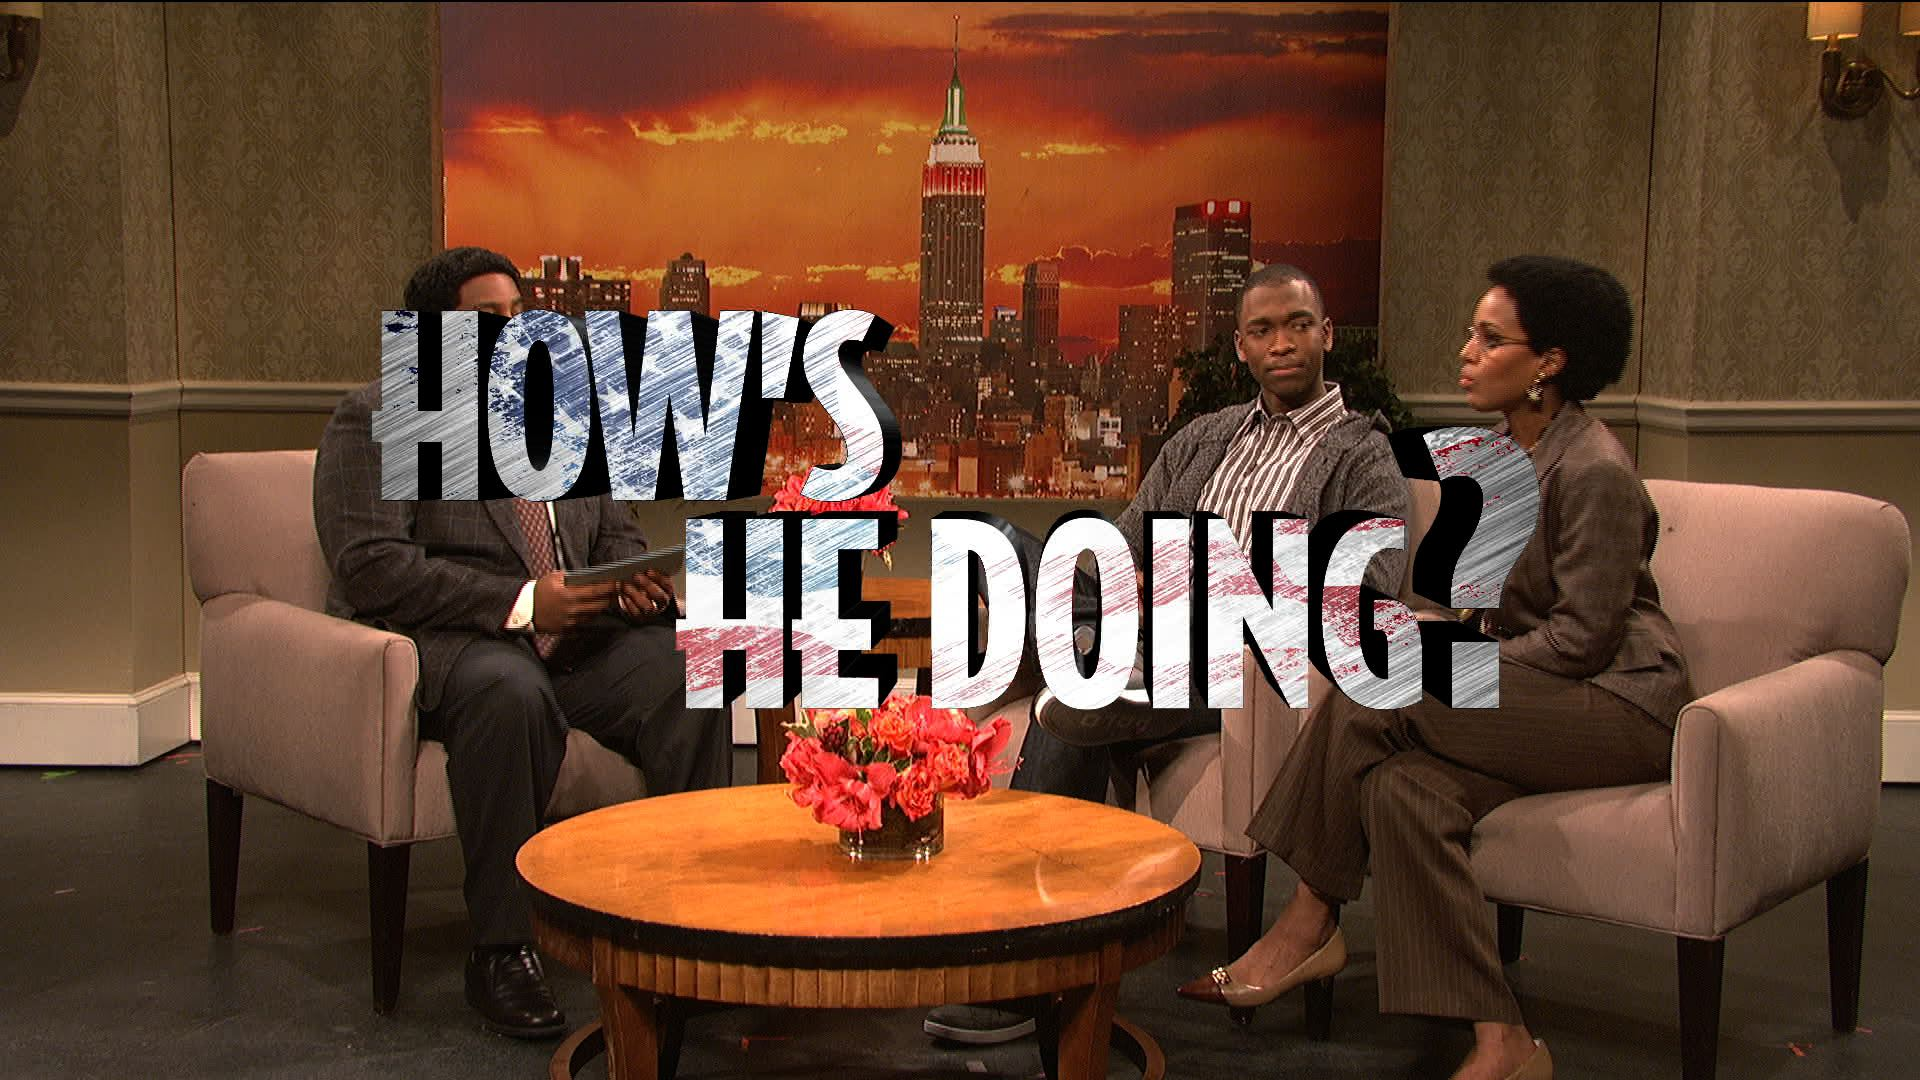 Kerry Washington on SNL: On African Americans' unconditional high Obama approval rating